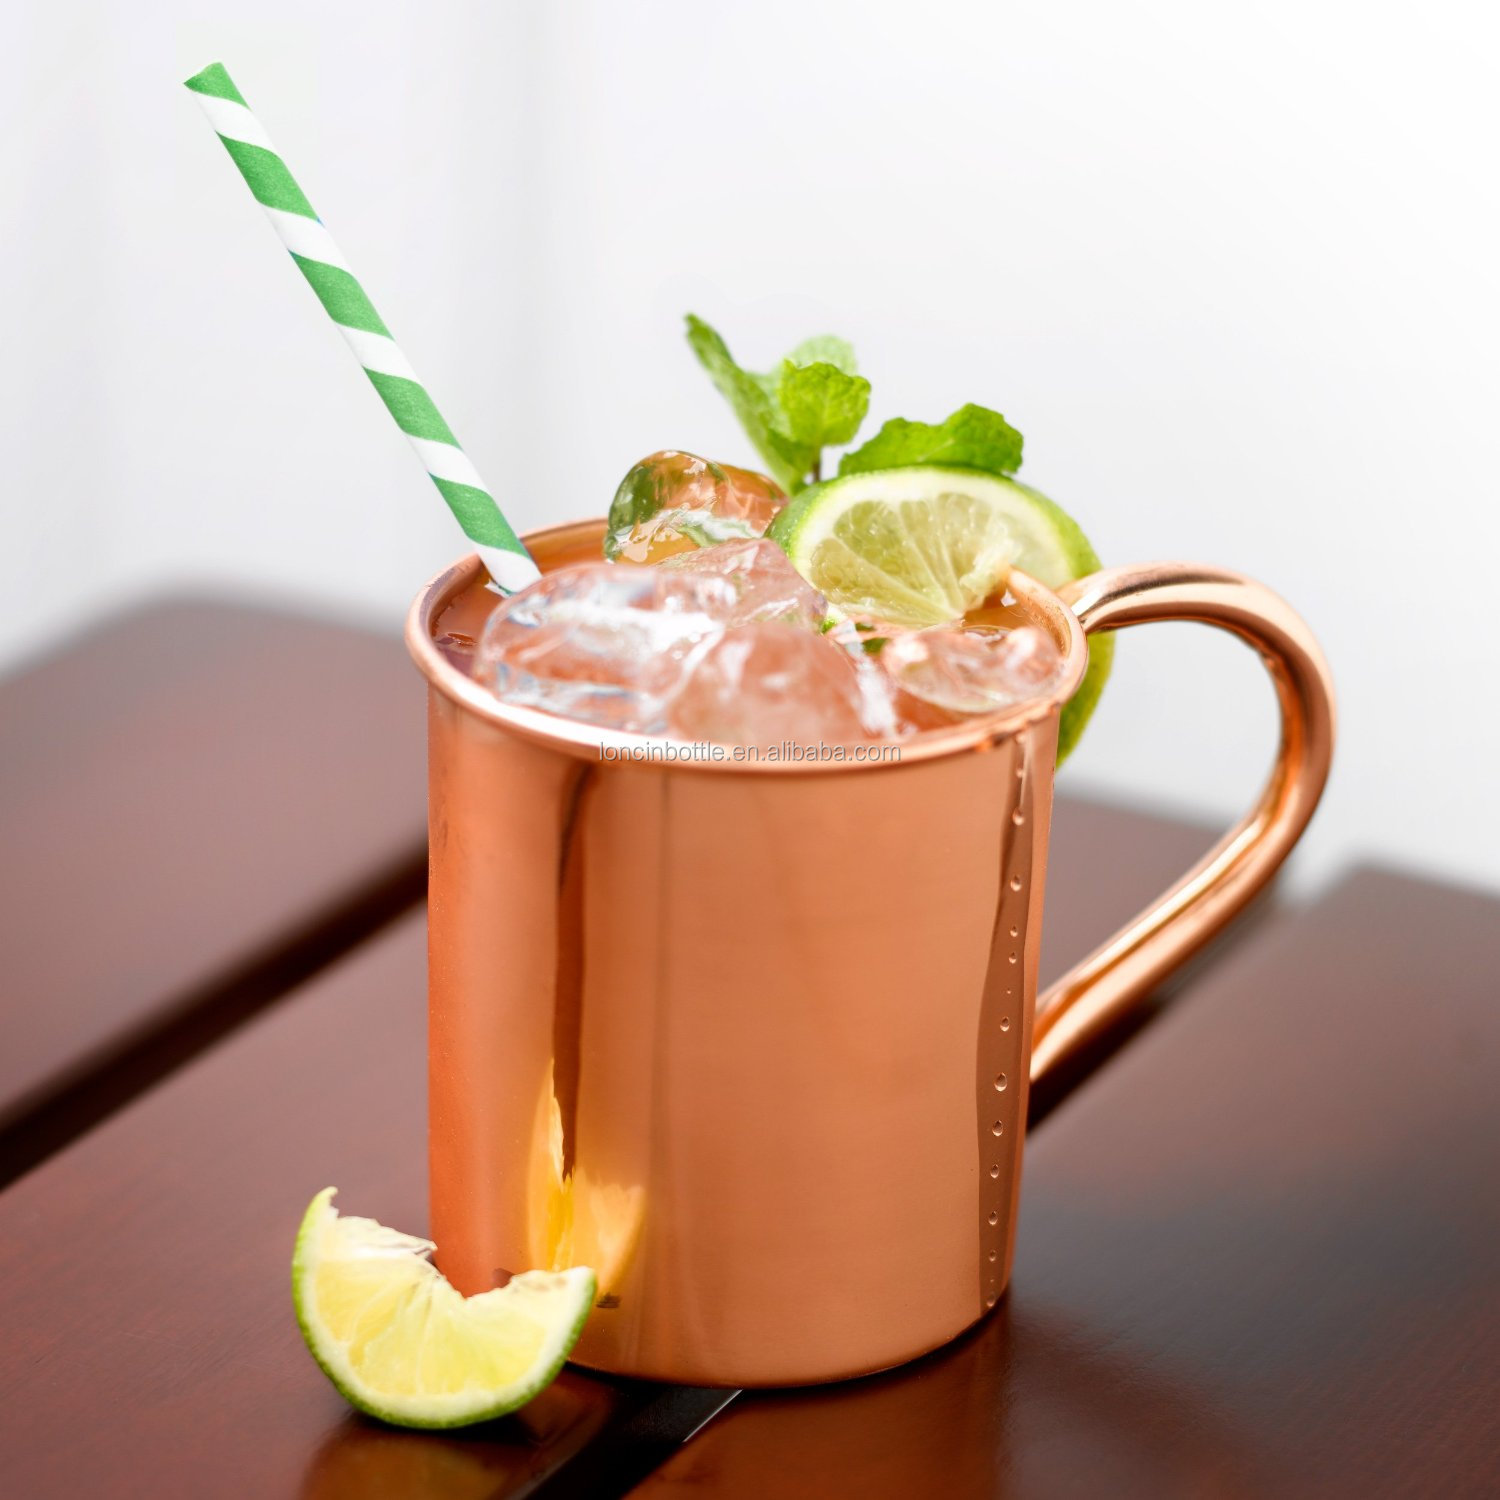 16oz solid copper mugs 450ml moscow mule cups 100 copper moscow mule mug - Moscow Mule Copper Mug